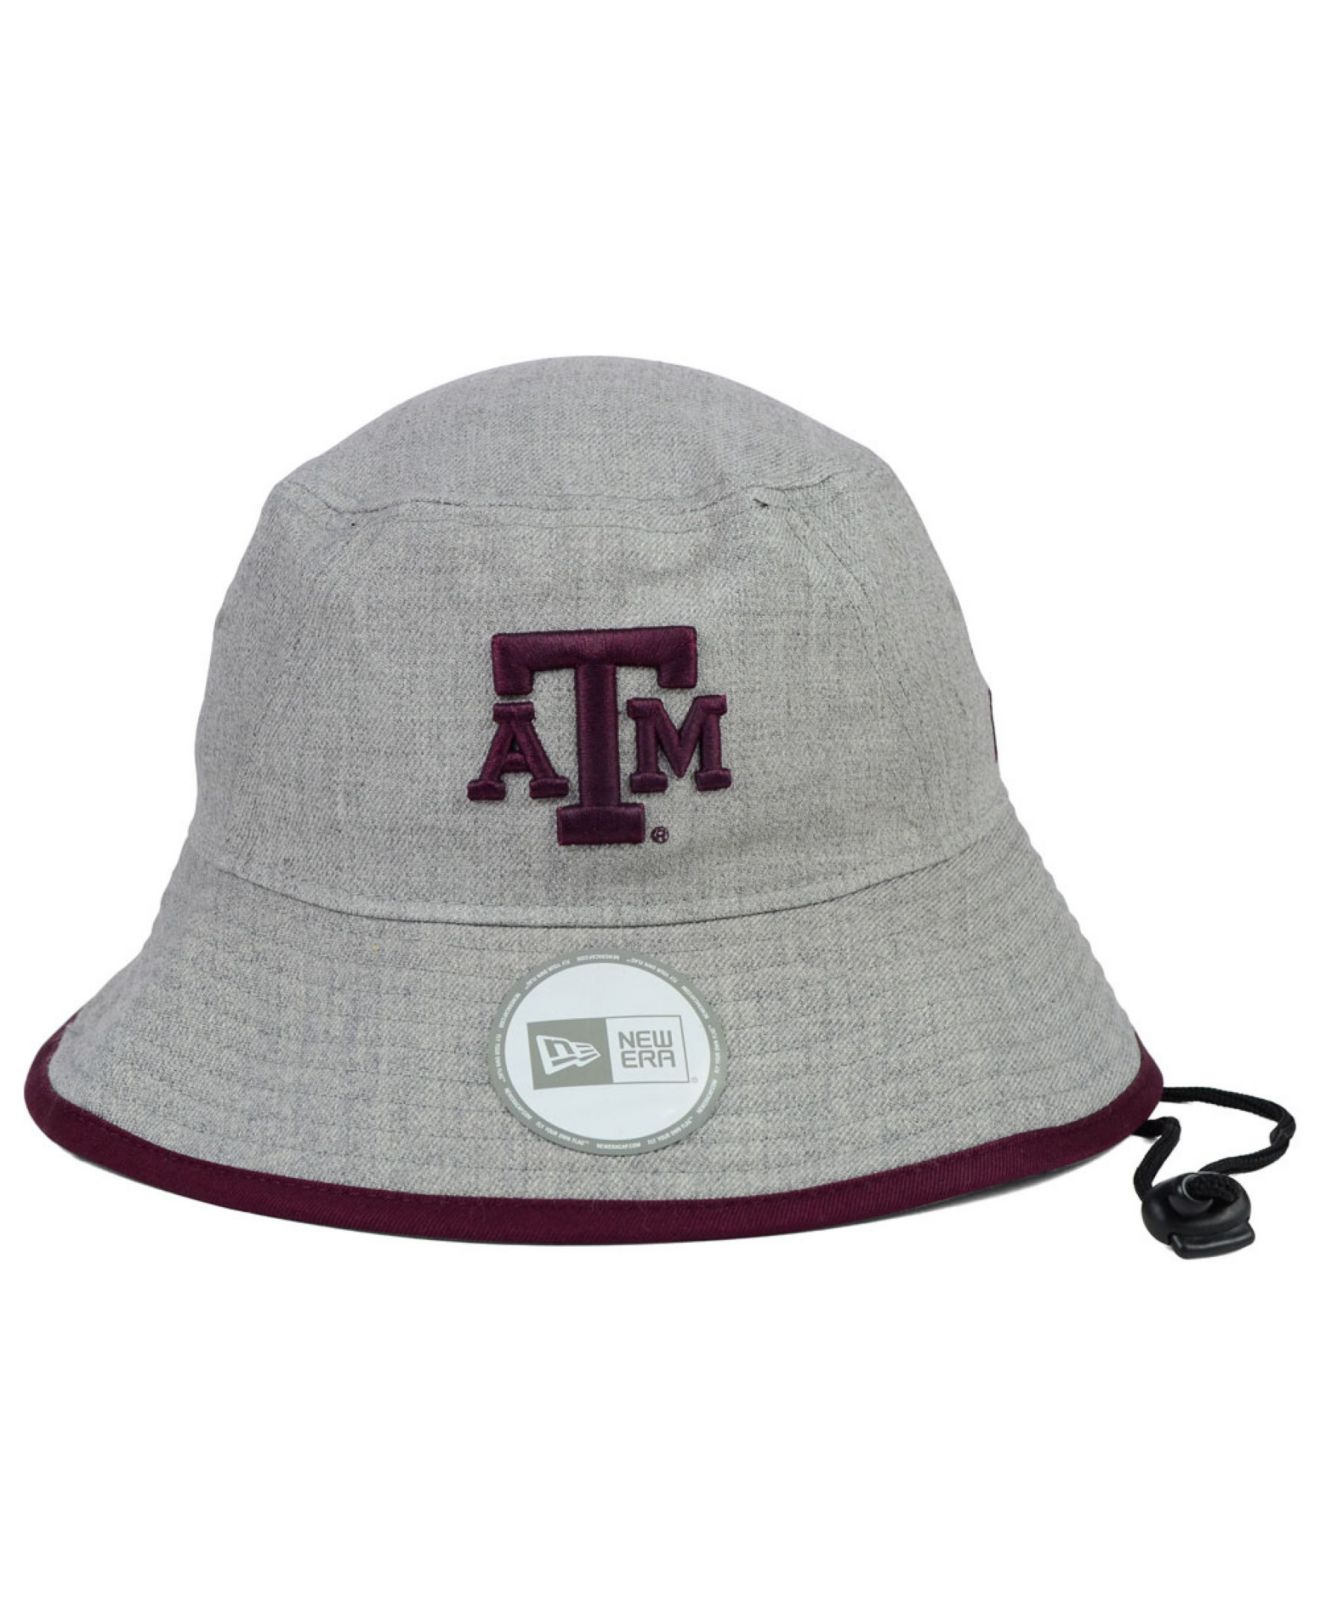 low cost b87ff 17aba KTZ Texas A M Aggies Tip Bucket Hat in Gray for Men - Lyst